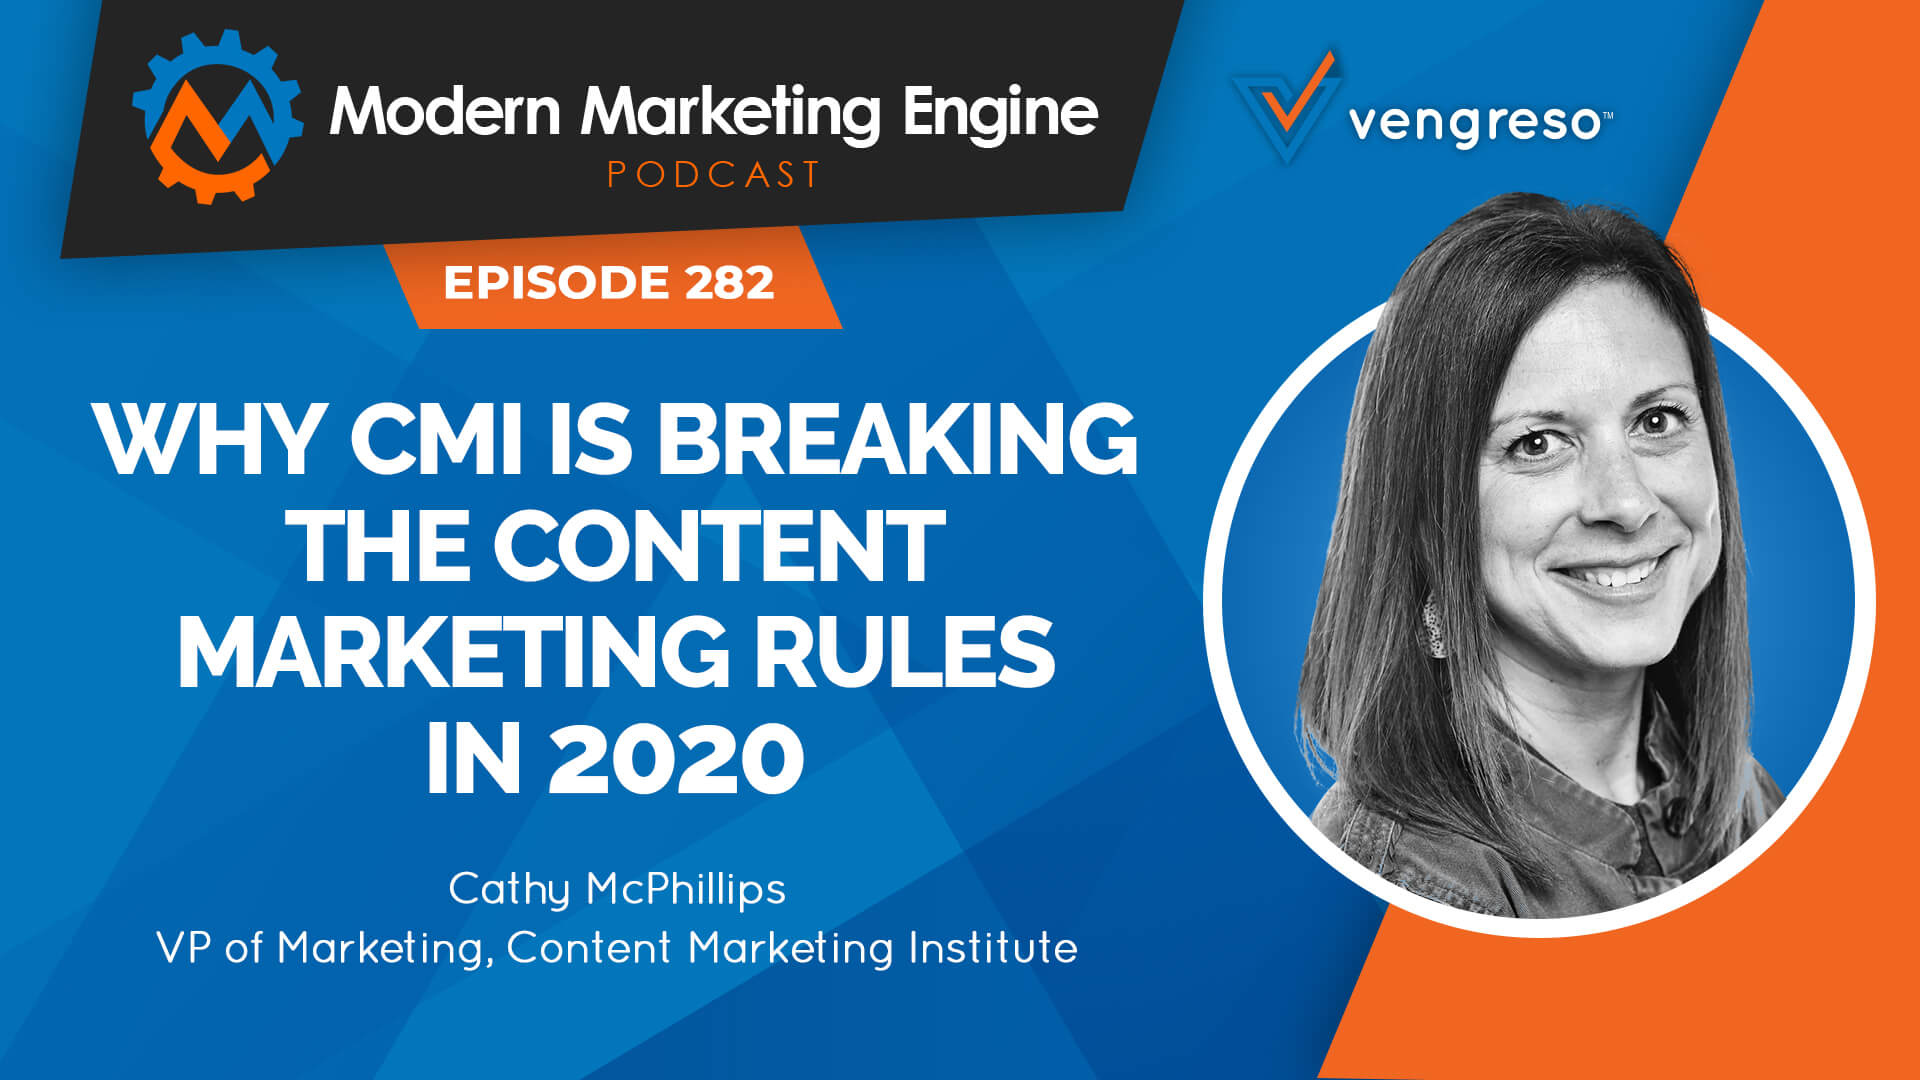 Why CMI is Breaking the Content Marketing World Rules in 2020